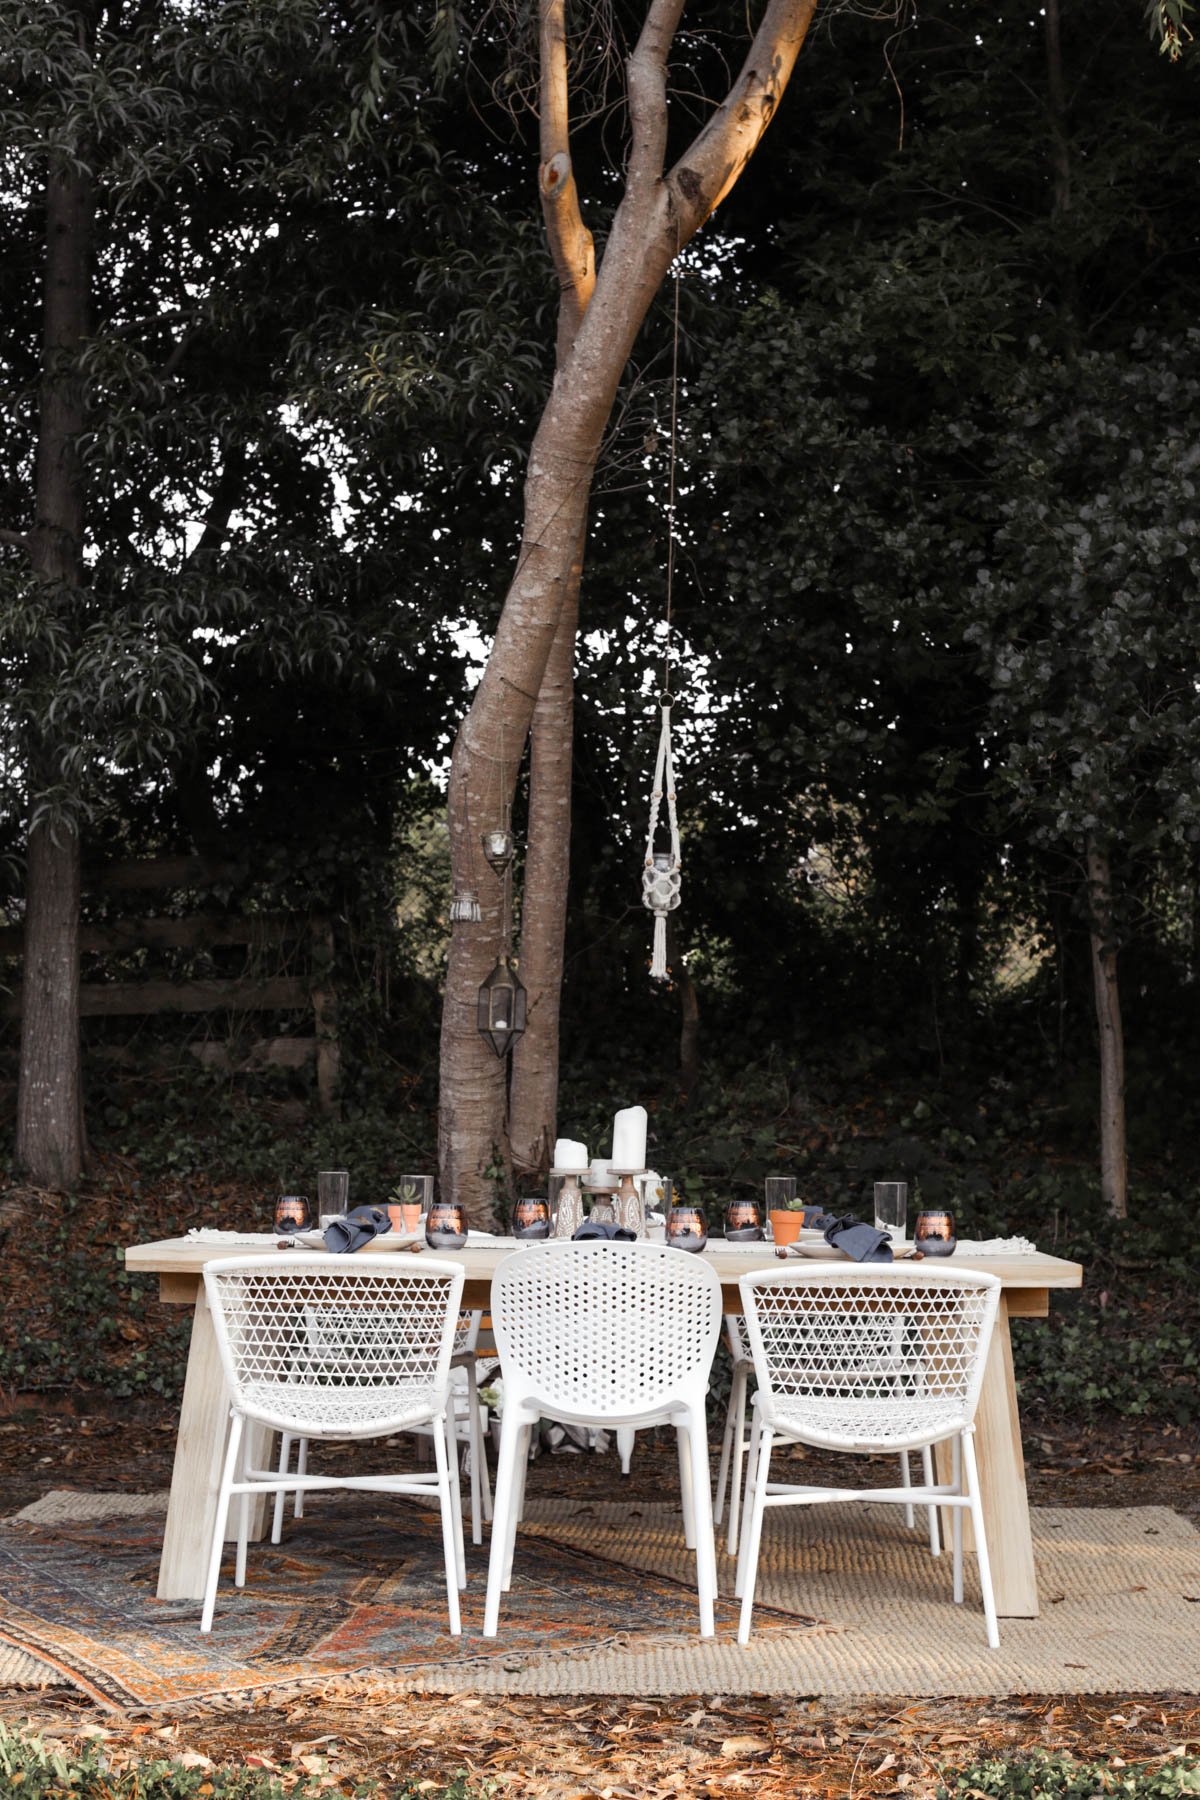 bohemian outdoor dining area with Article chairs